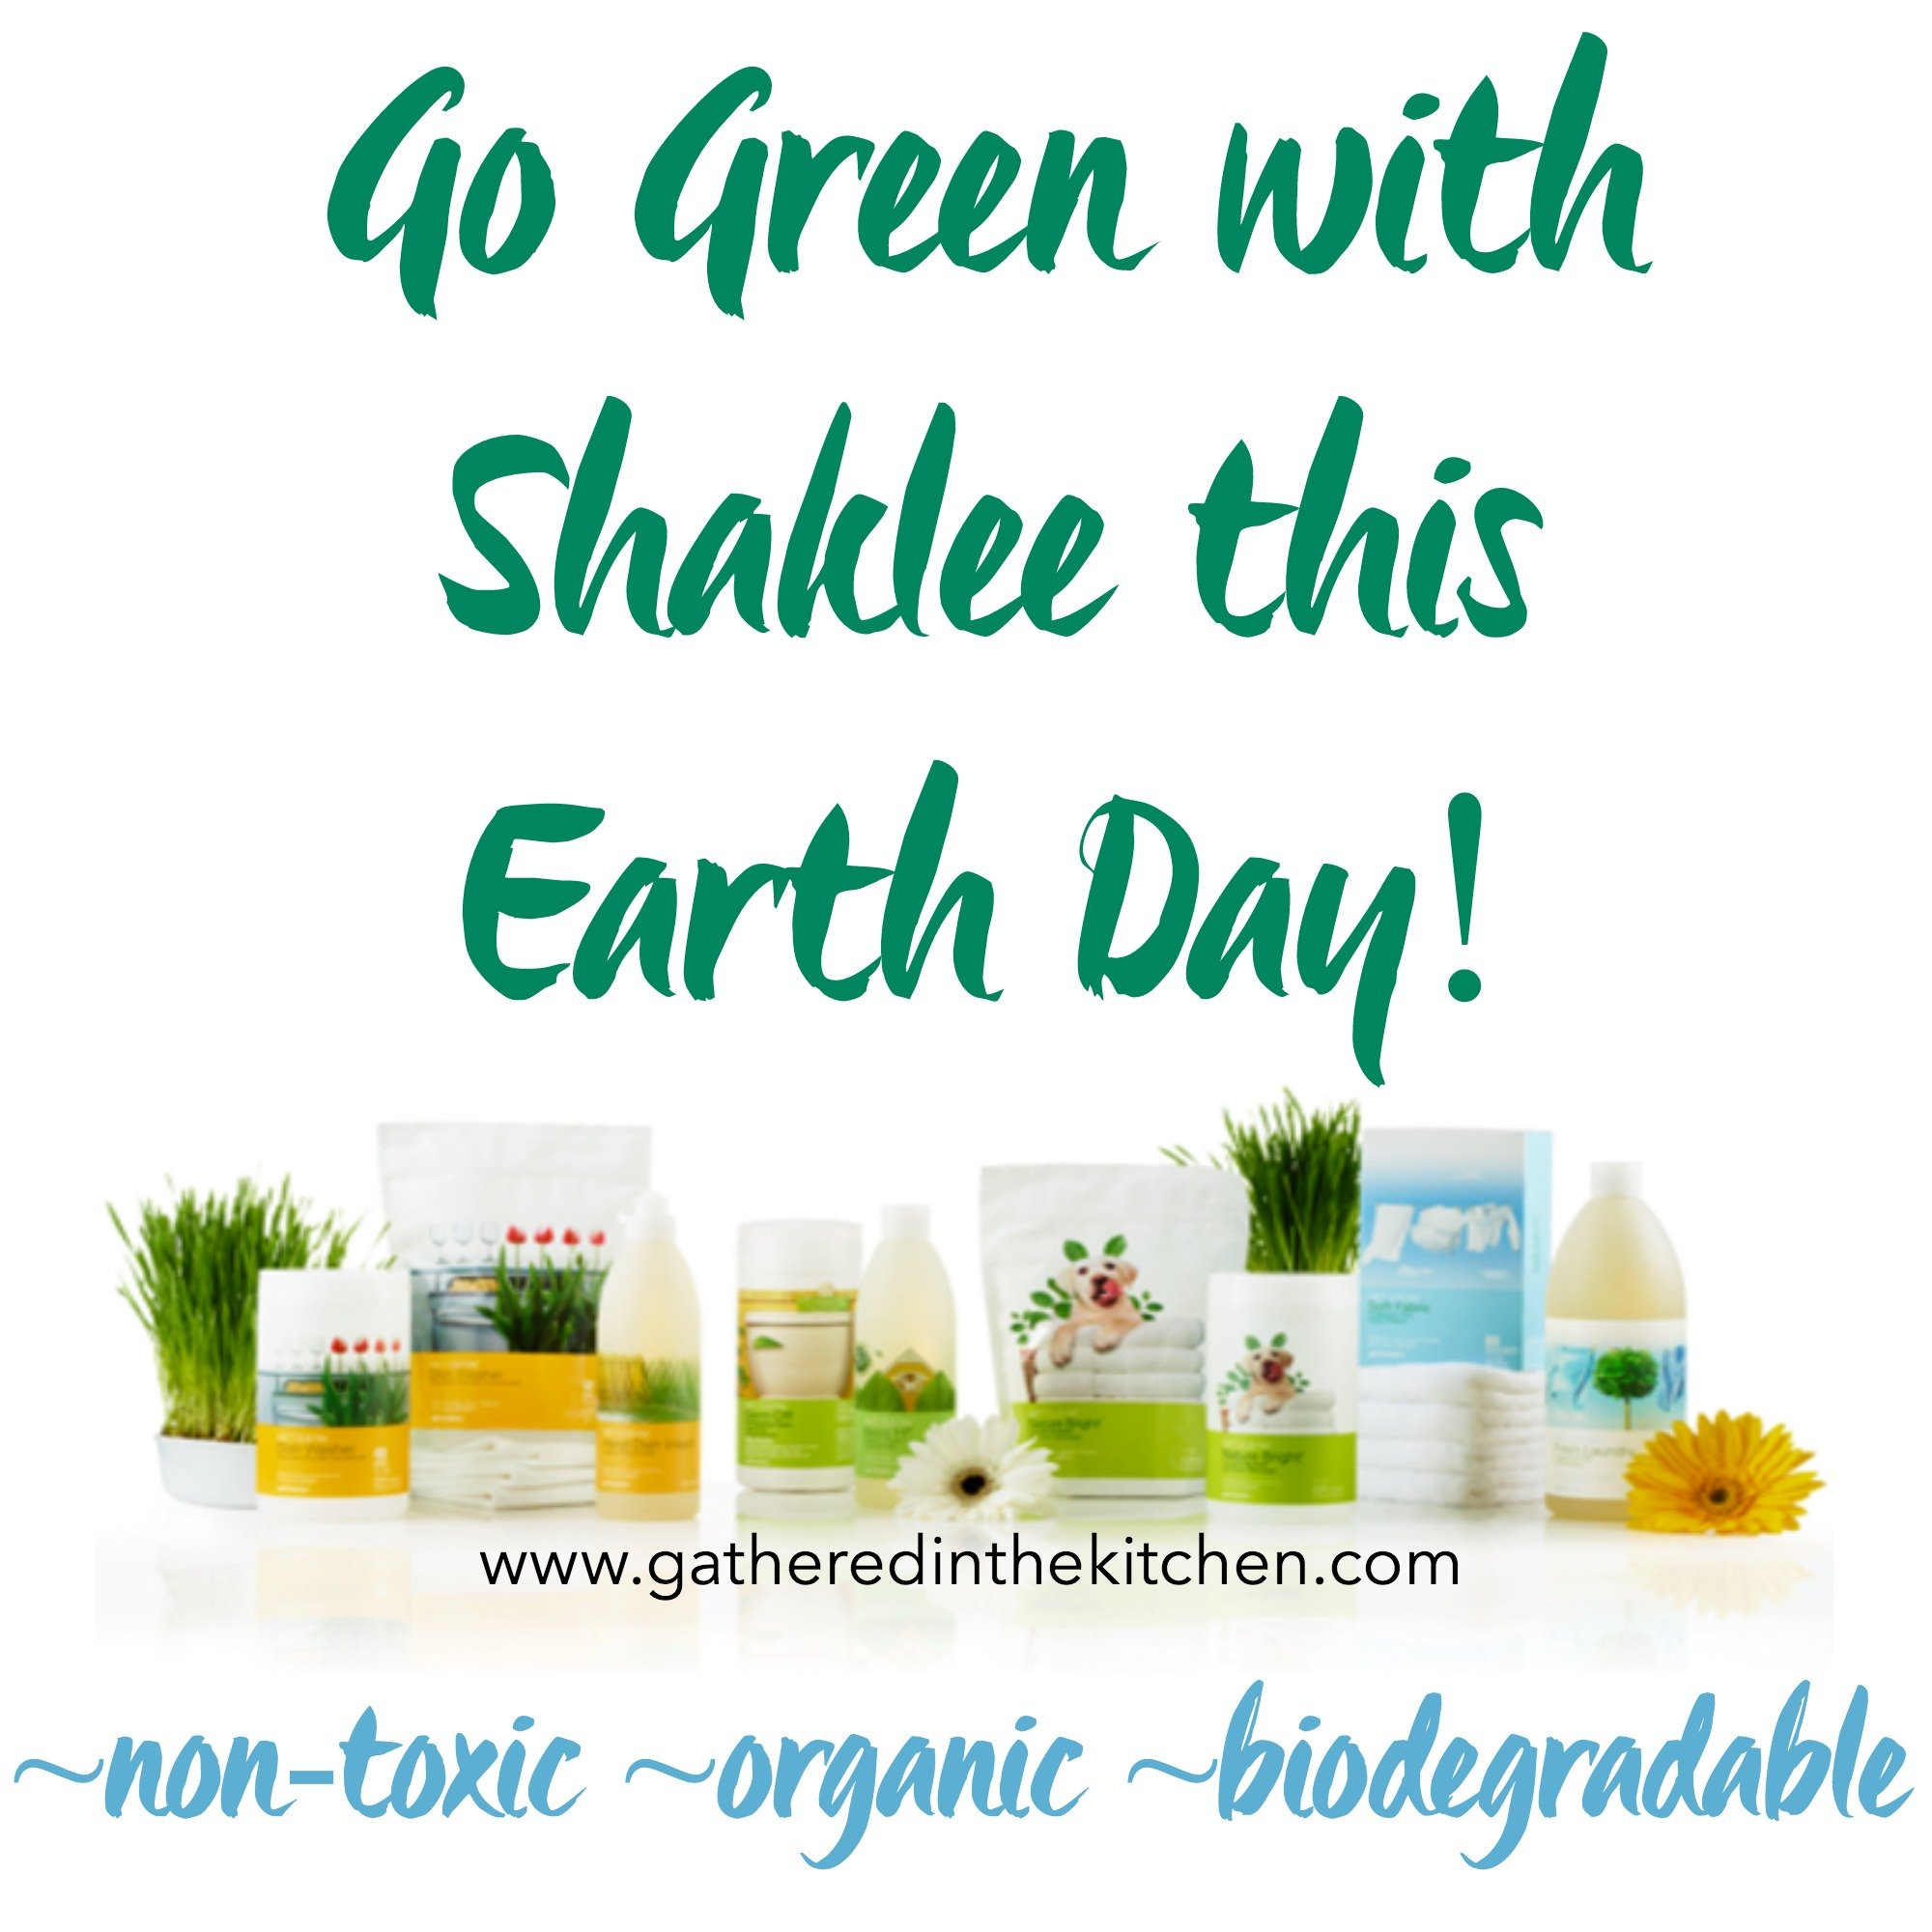 Go Green with Shaklee this Earth Day